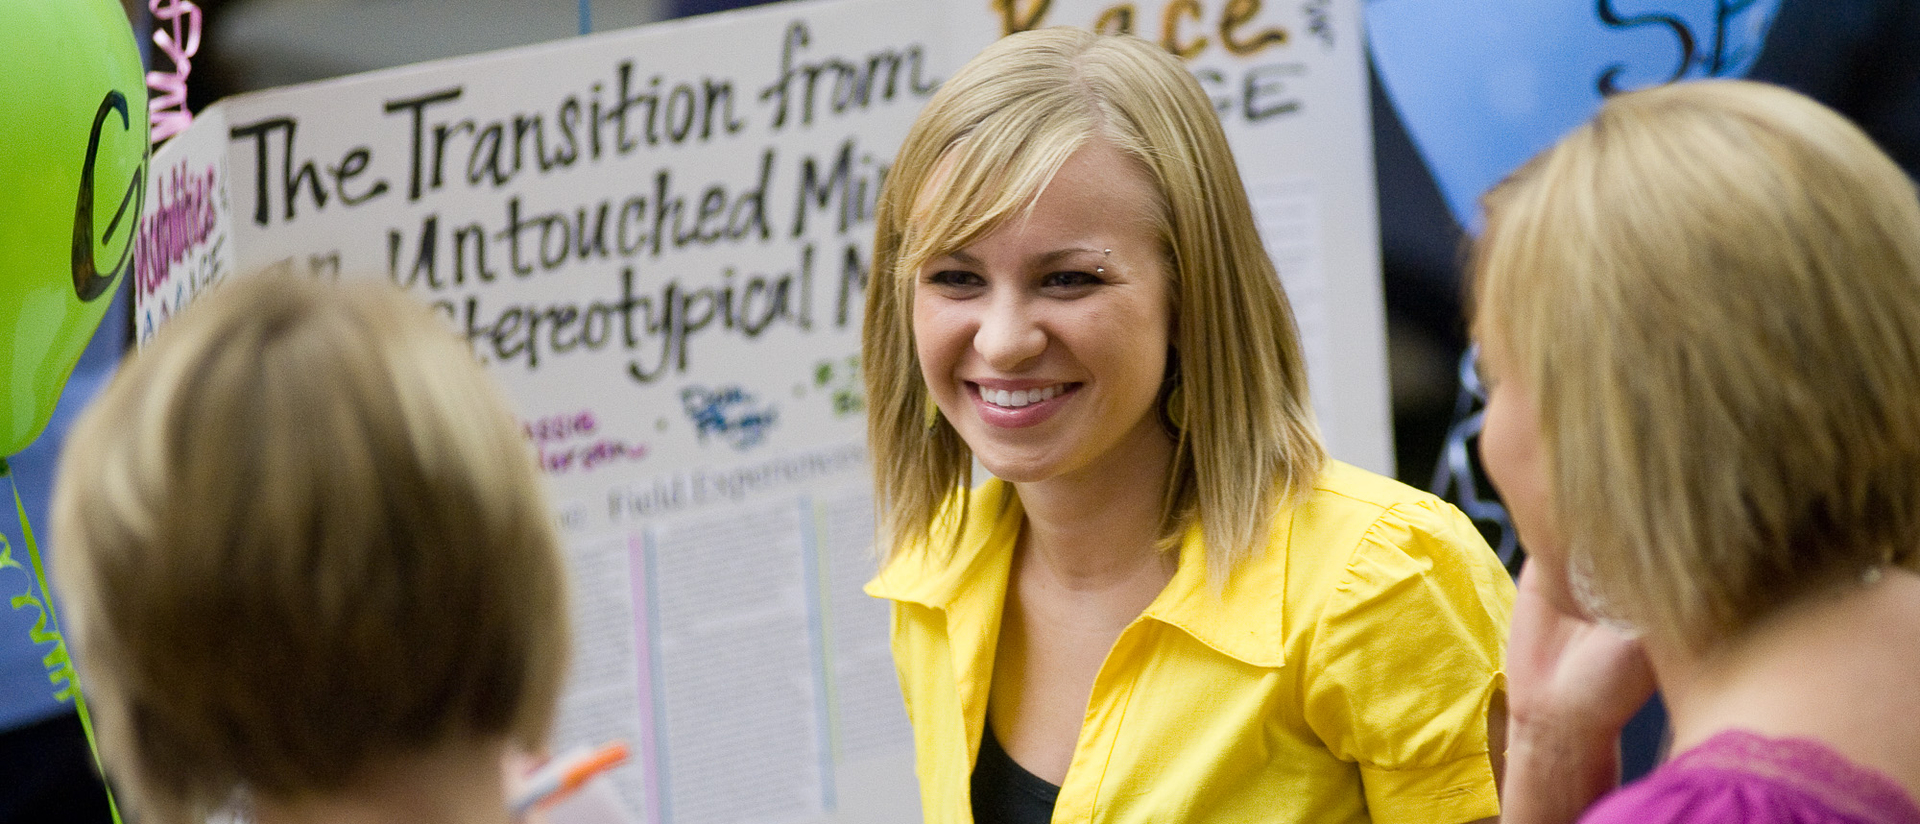 Girl in yellow top smiling at social work fair.